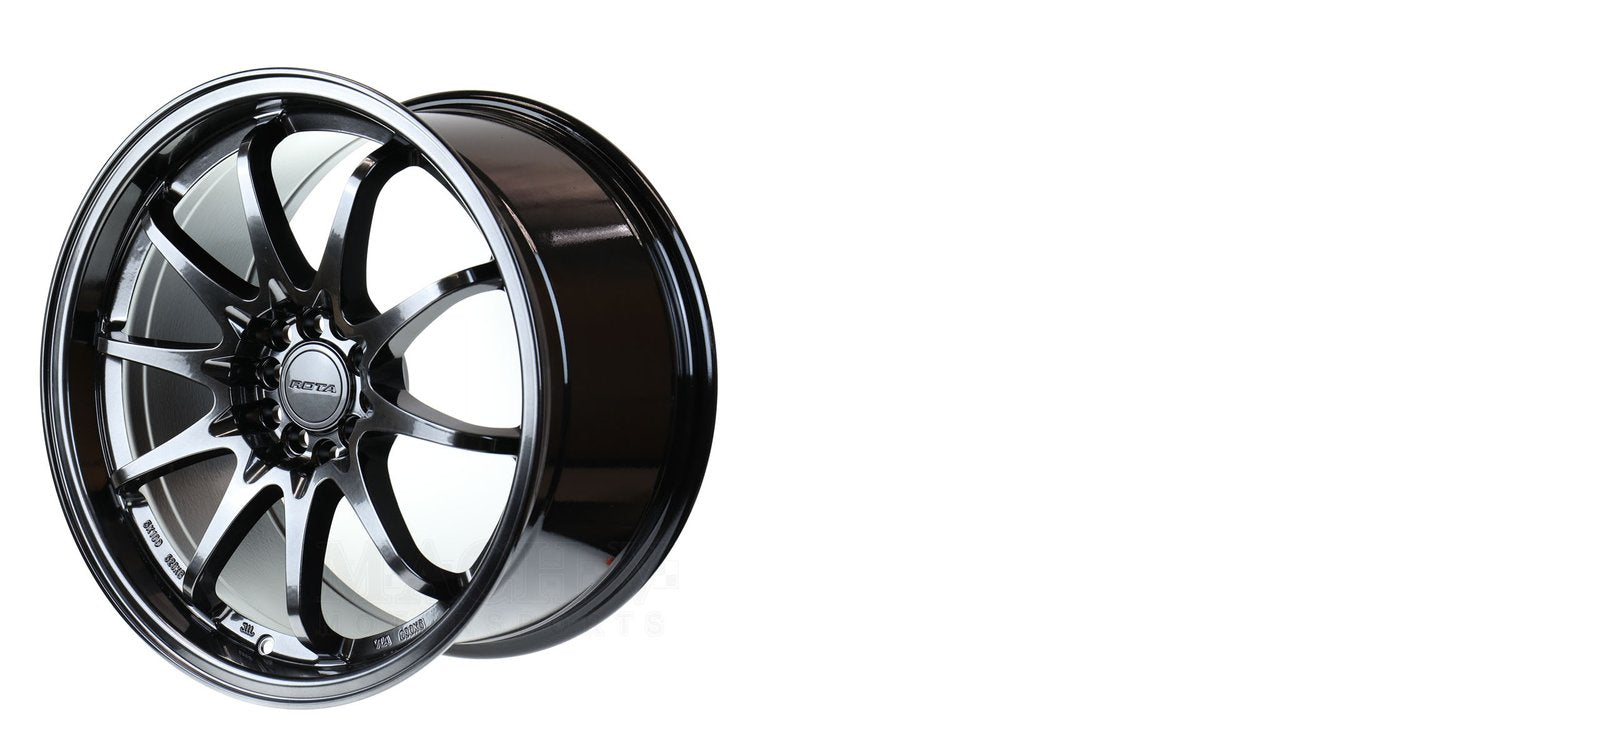 Mach V 5mm wheel spacers